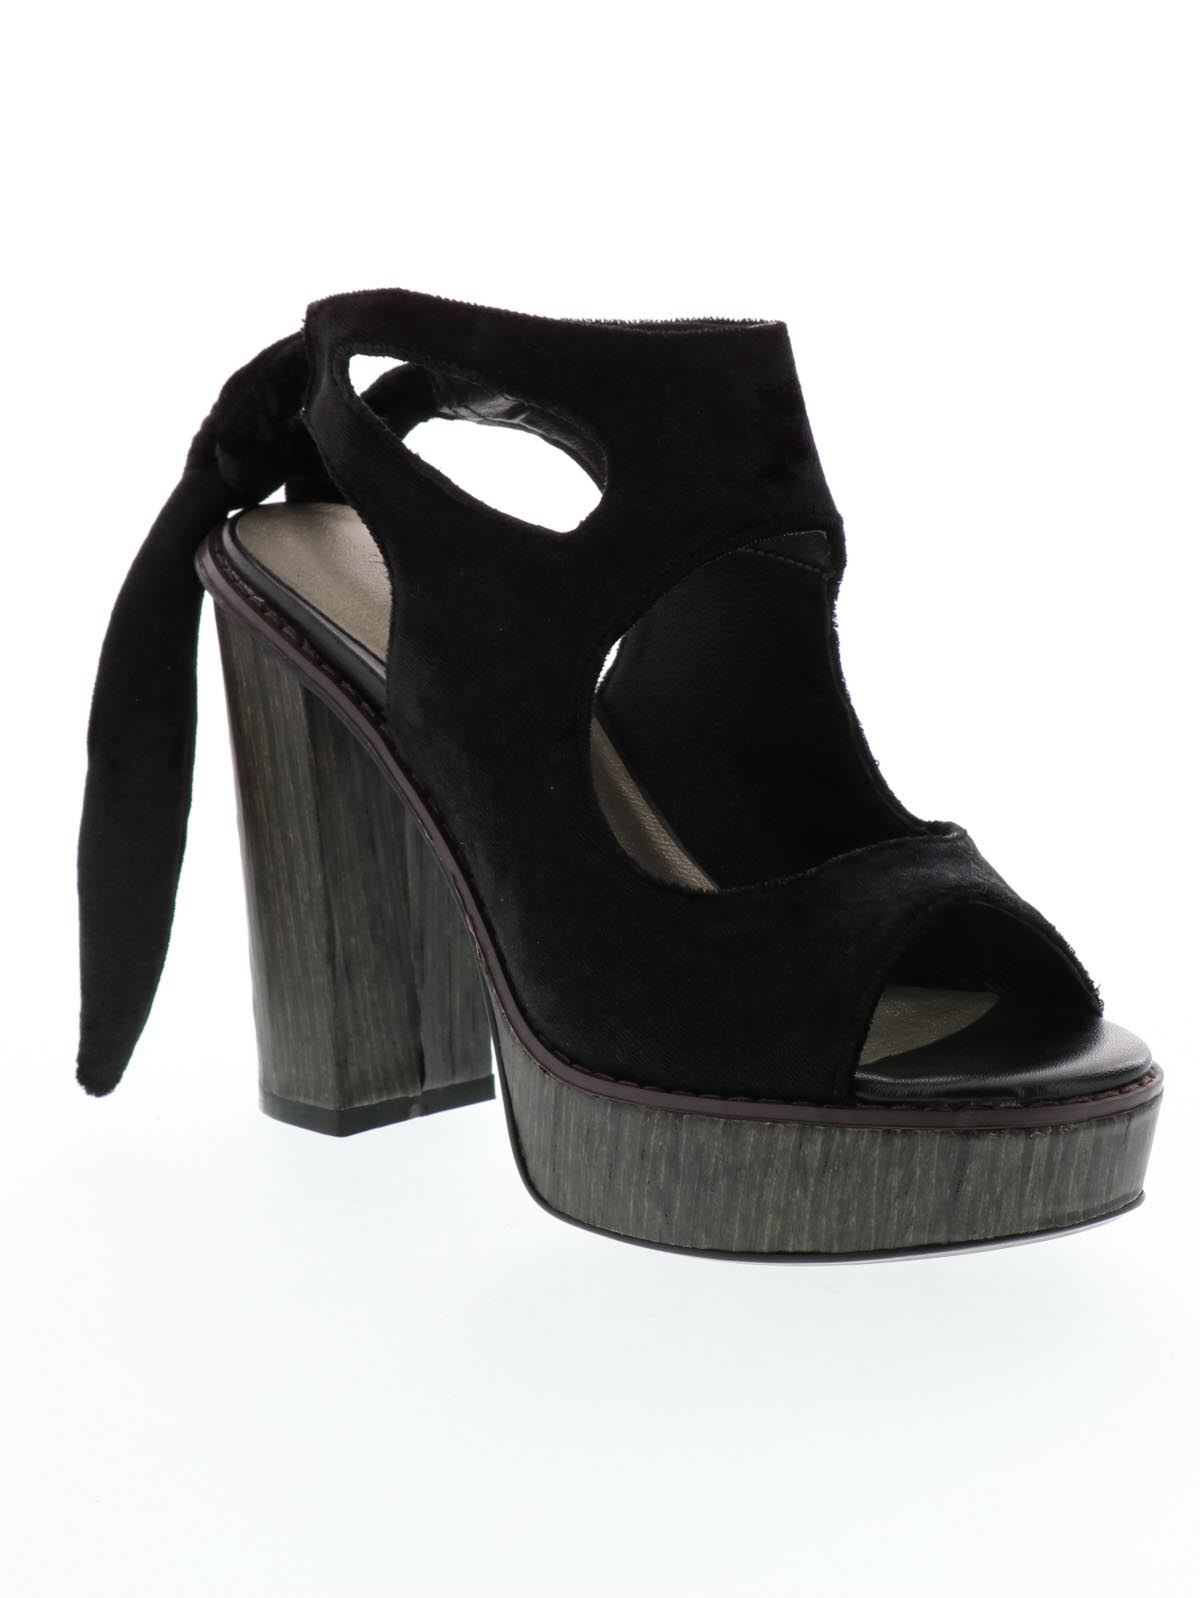 d5be355fb09 Details about Very Volatile KIMBRA Cutout Ankle Tie Sandal